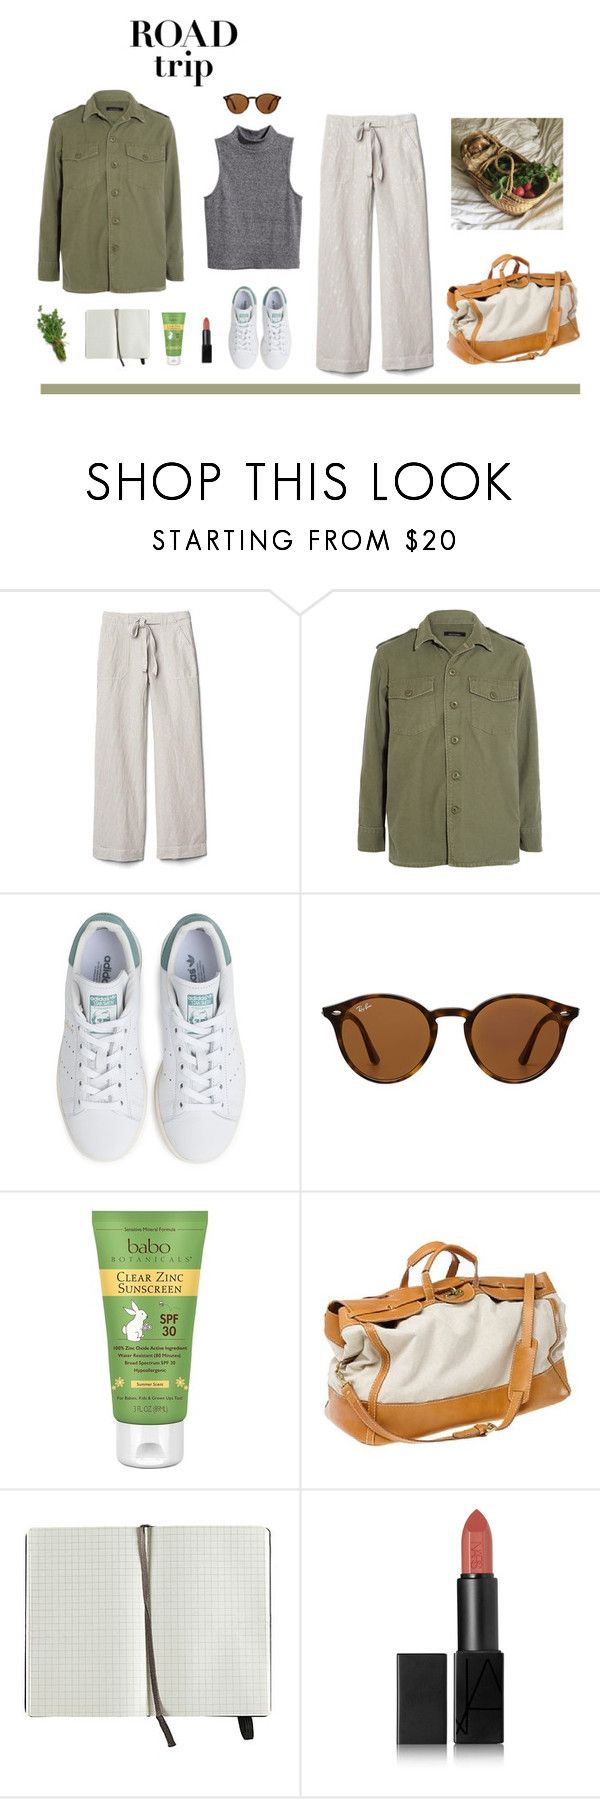 """""""road trip - farm country"""" by moogtoast ❤ liked on Polyvore featuring Gap, H&M, Equipment, adidas, Ray-Ban, Babo Botanicals, J.Crew, Moleskine, NARS Cosmetics and country"""